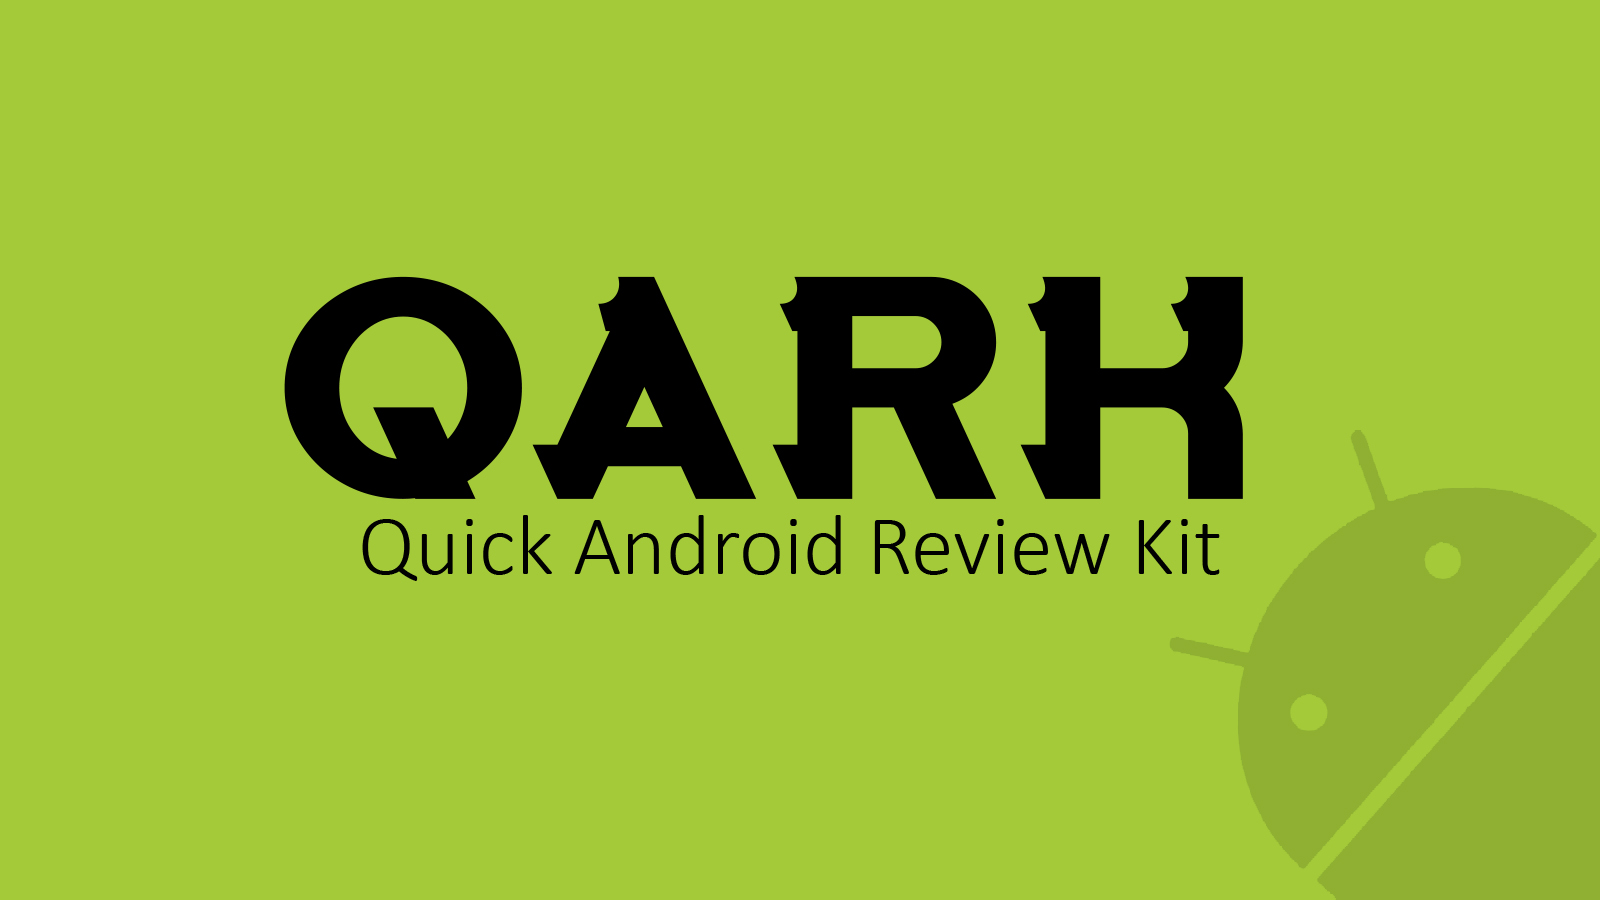 QARK - Quick Android Review Kit